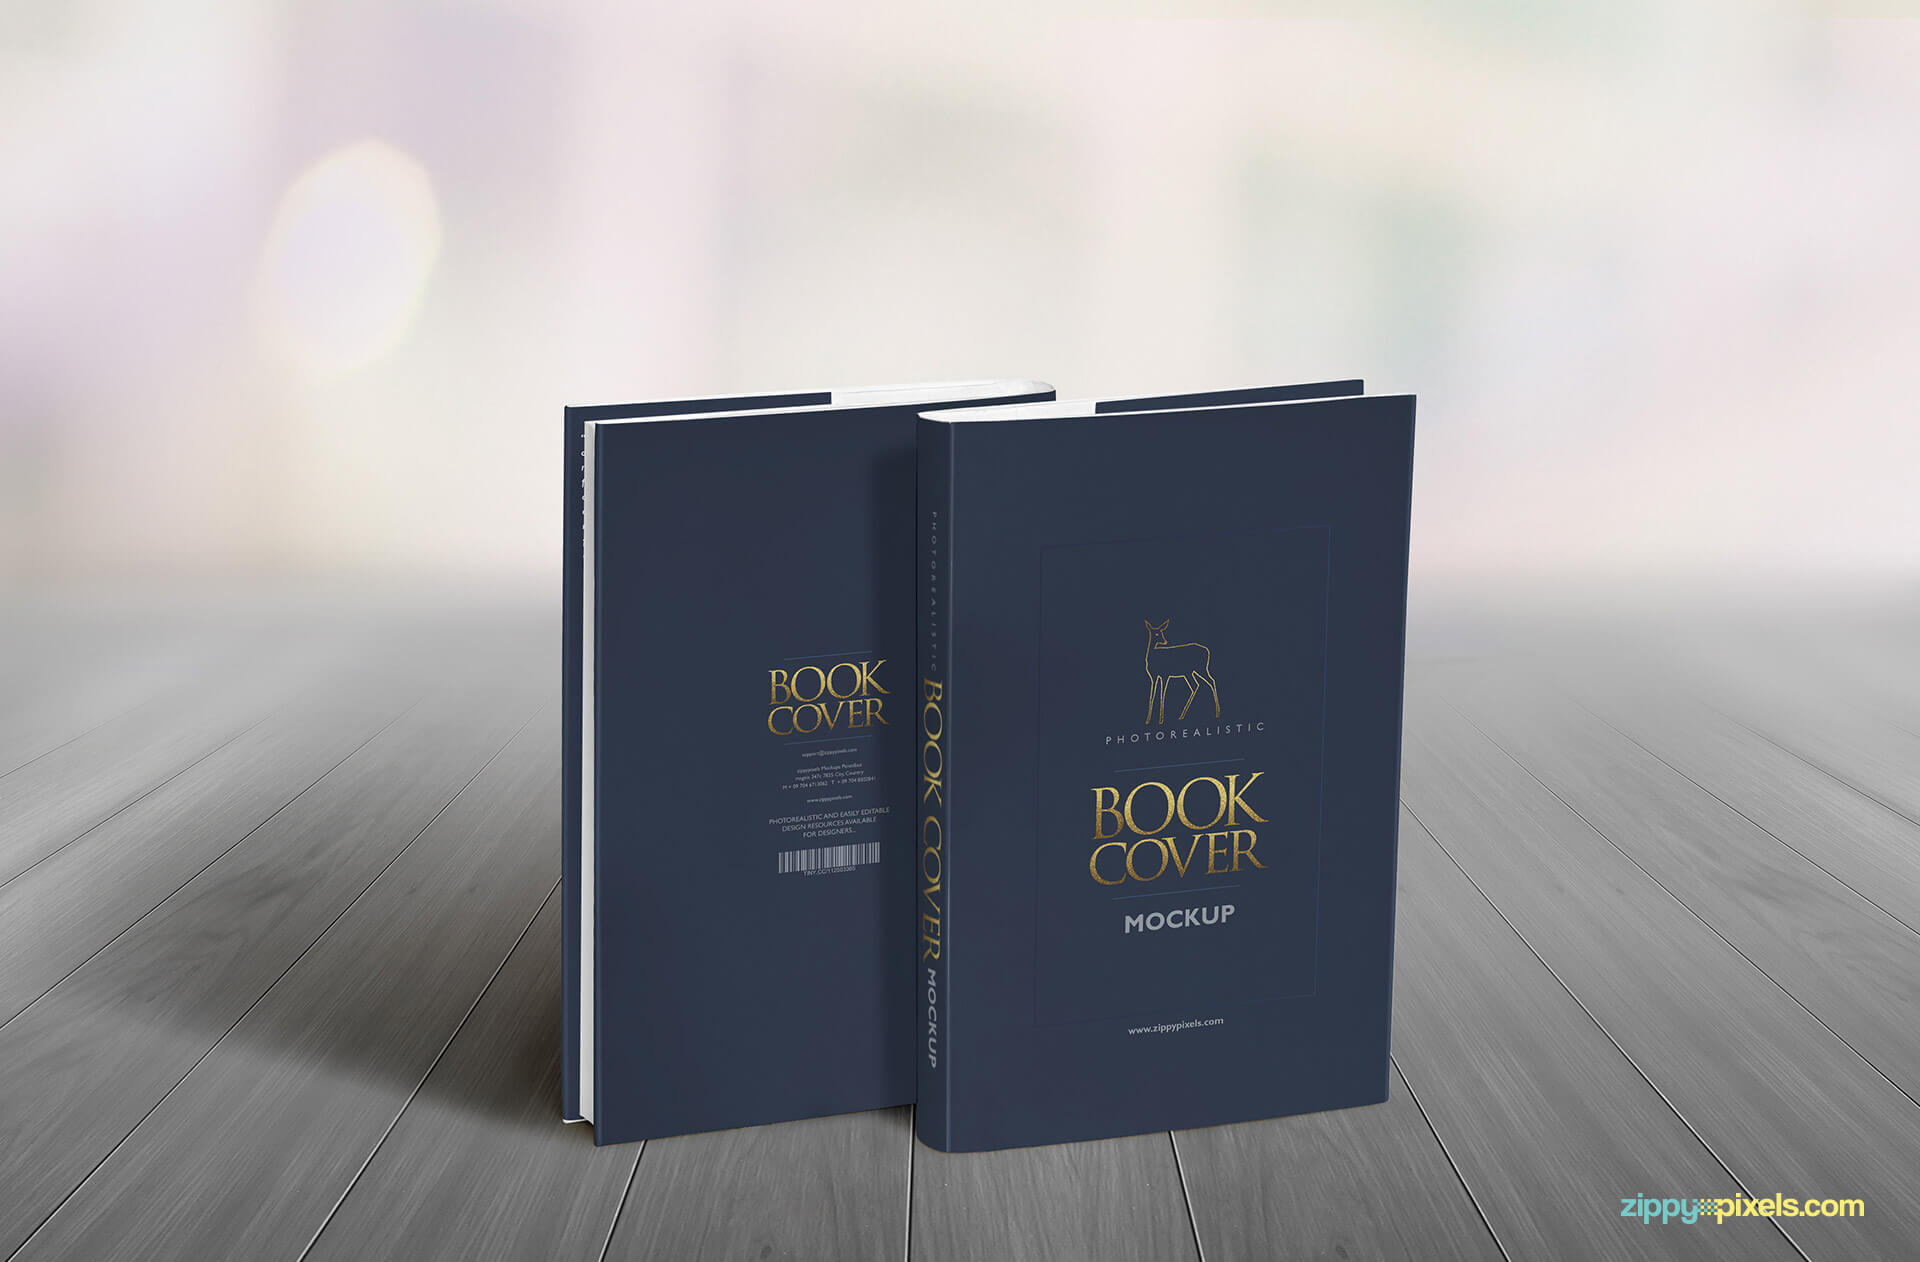 Hardcover book mocksup showing two book standing to show fron and back of dustcover